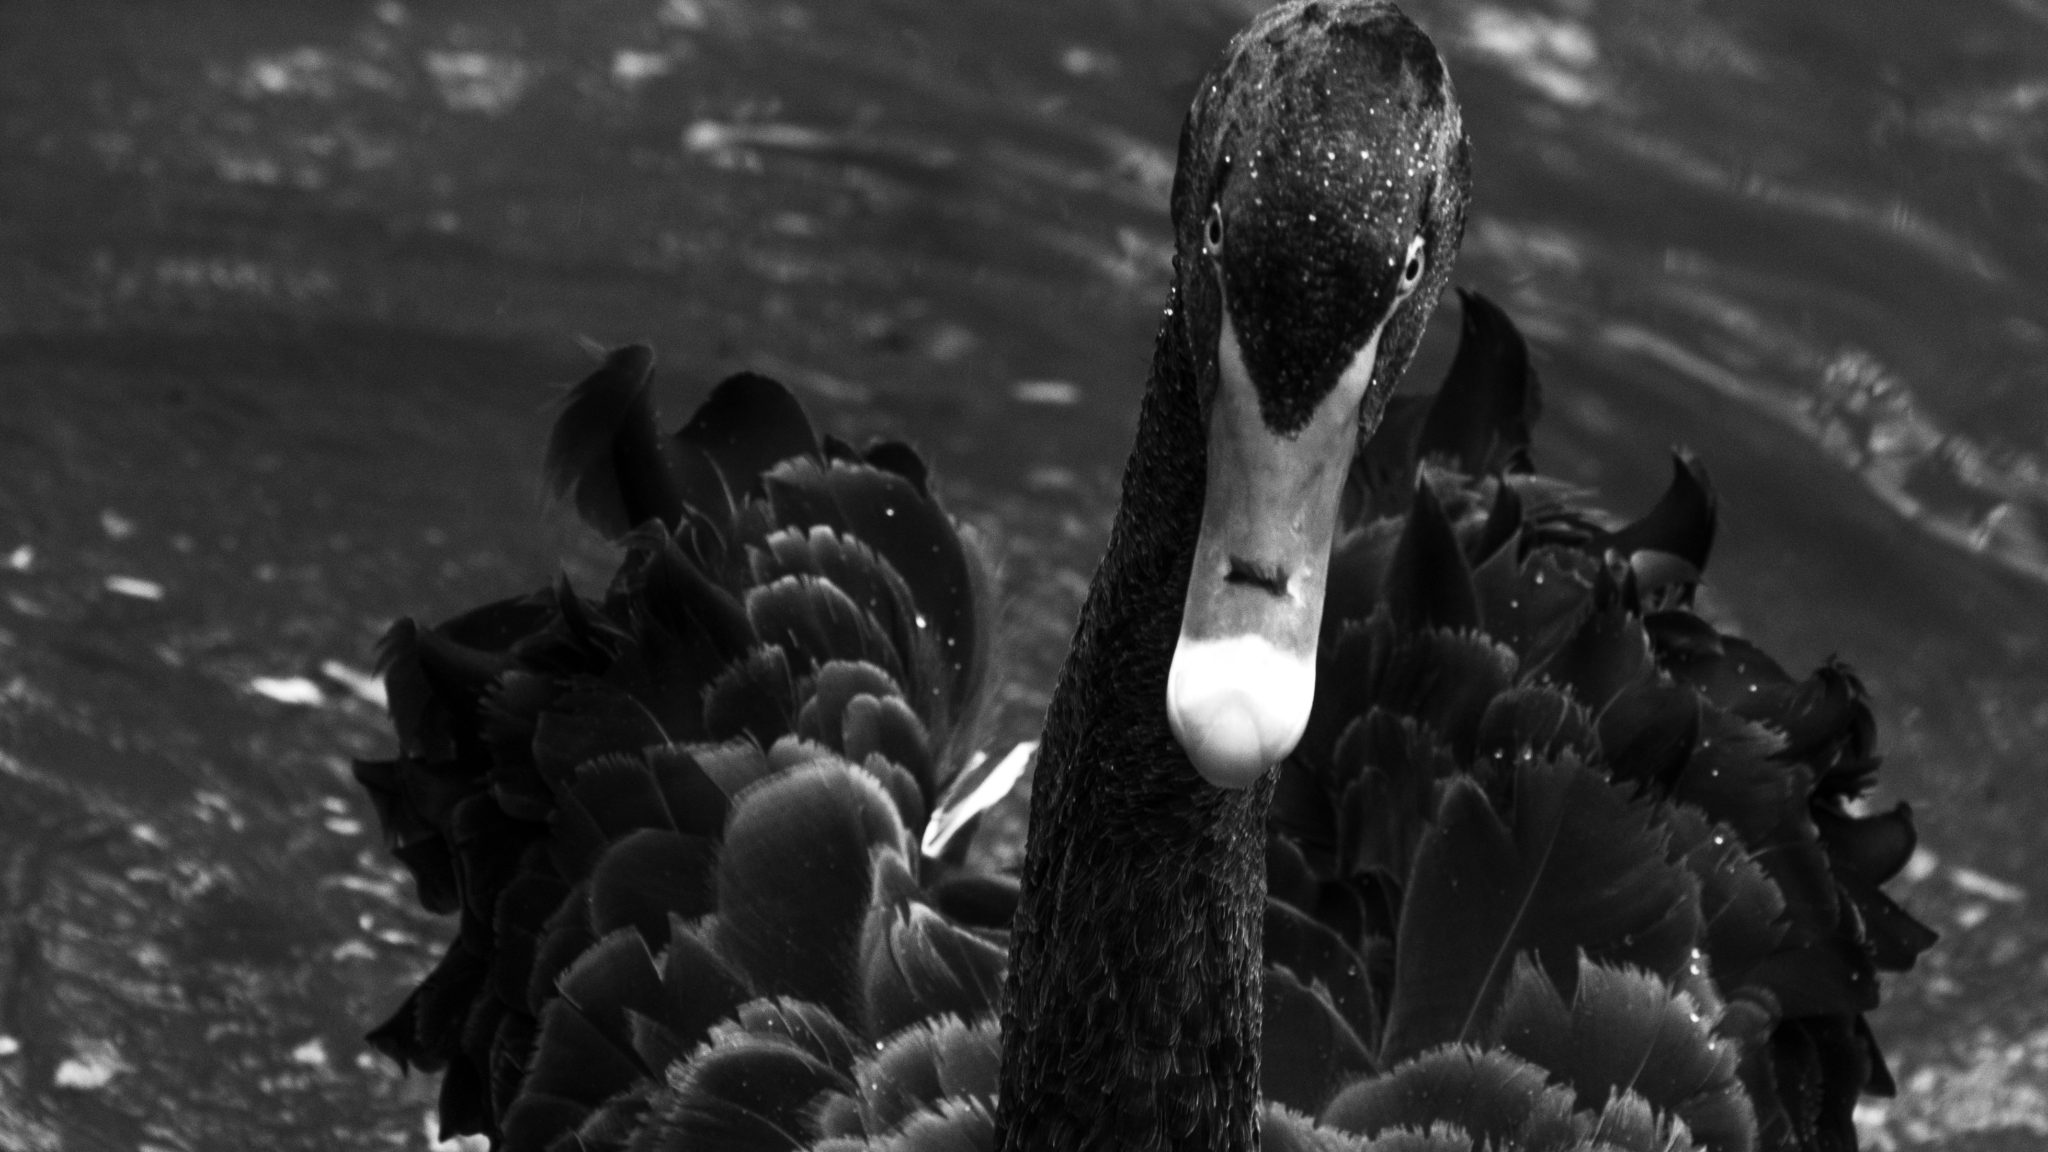 shot with NikonD3300, 1/320s, f/8. This shot of black swan is an image I will never forget, what a beauty he was. I waited till he approached me with his menacing looks. I wanted to clearly capture. I had heard a lot about how swans get angry and this shot literally gave me that. The monochrome effect is to convey that emotion.